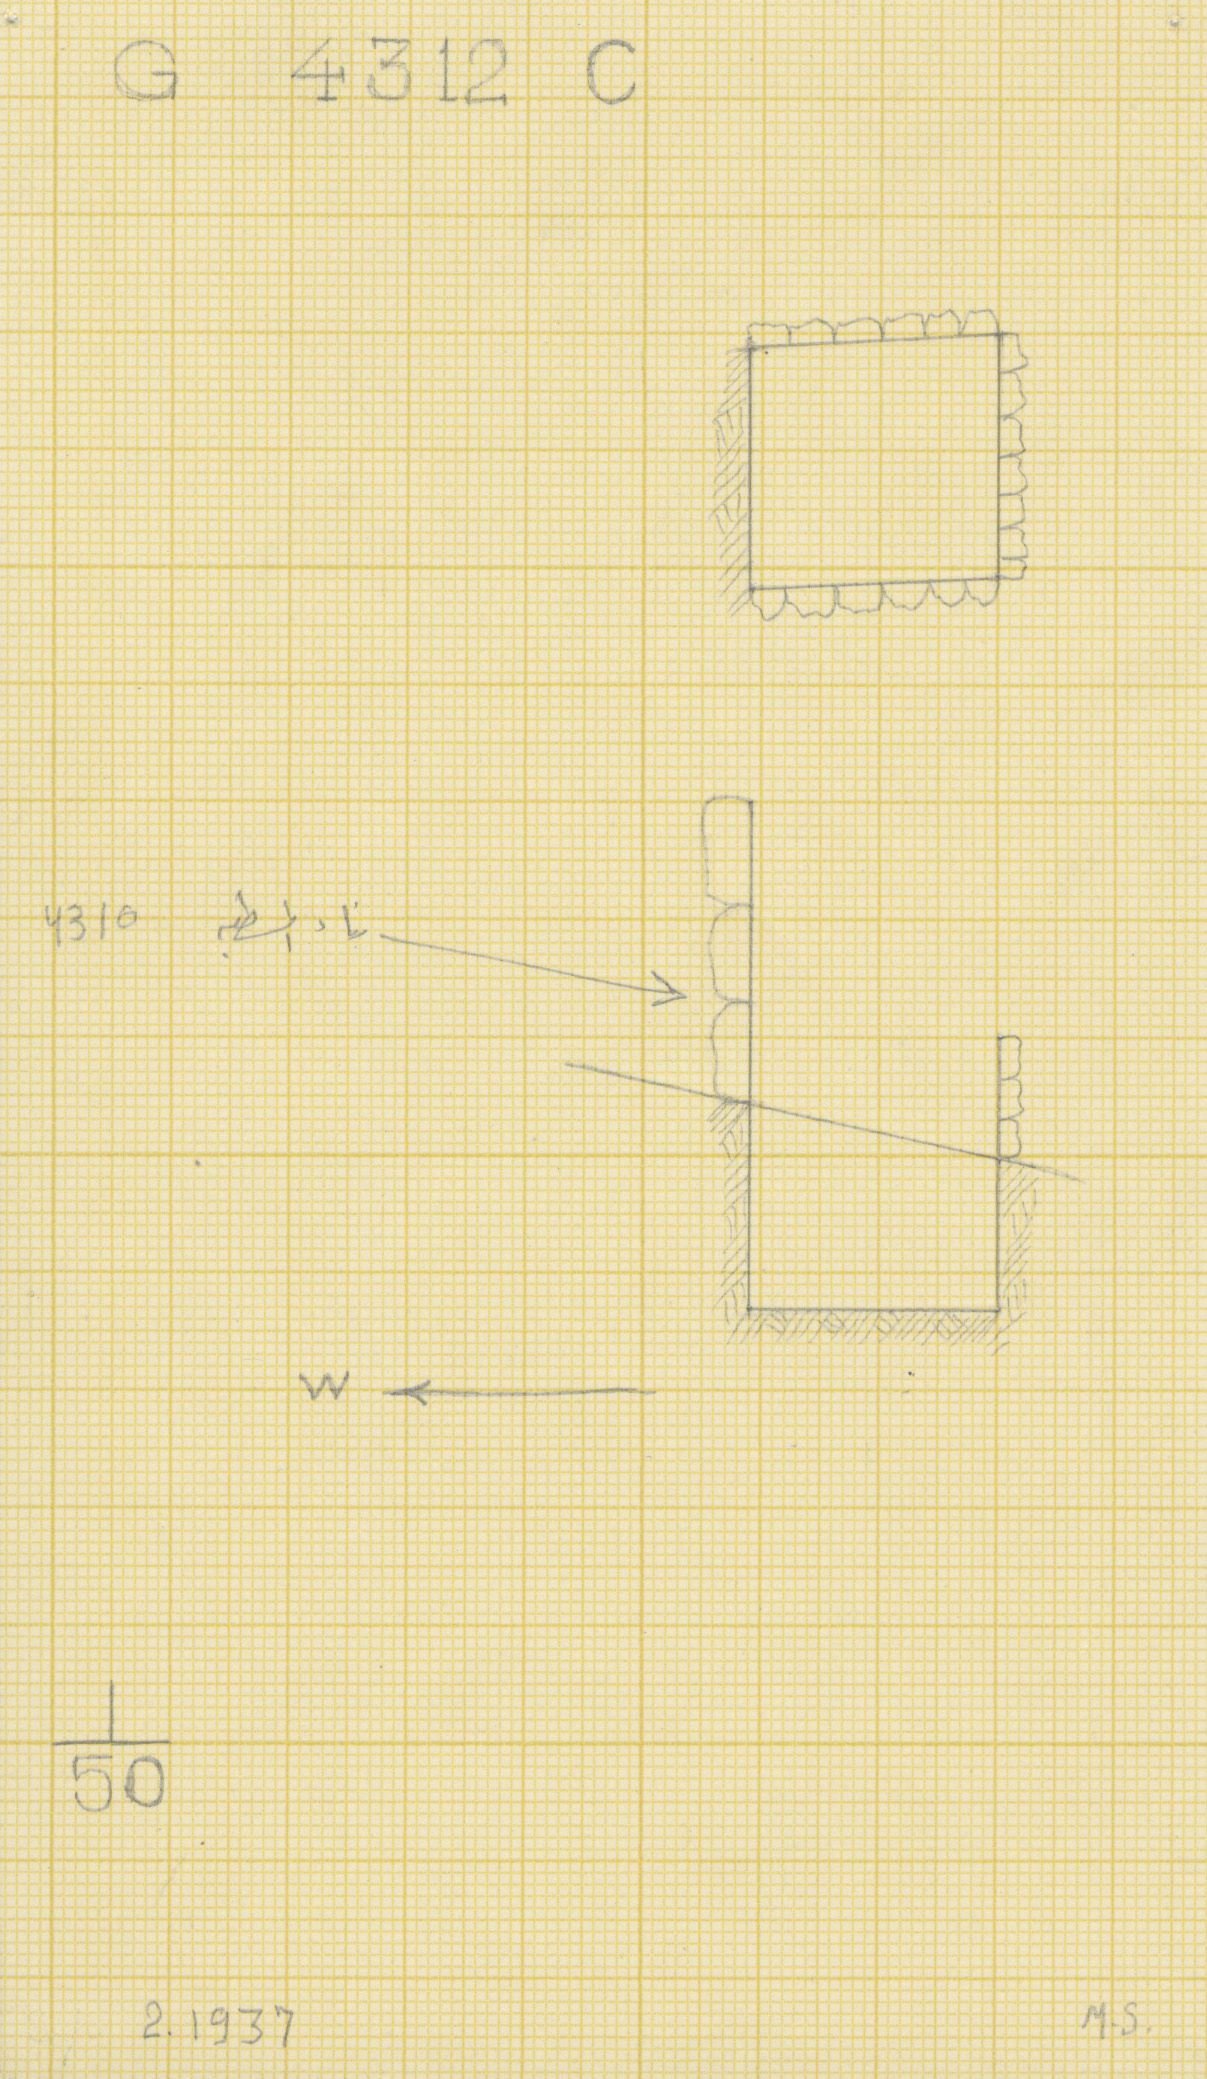 Maps and plans: G 4312, Shaft C